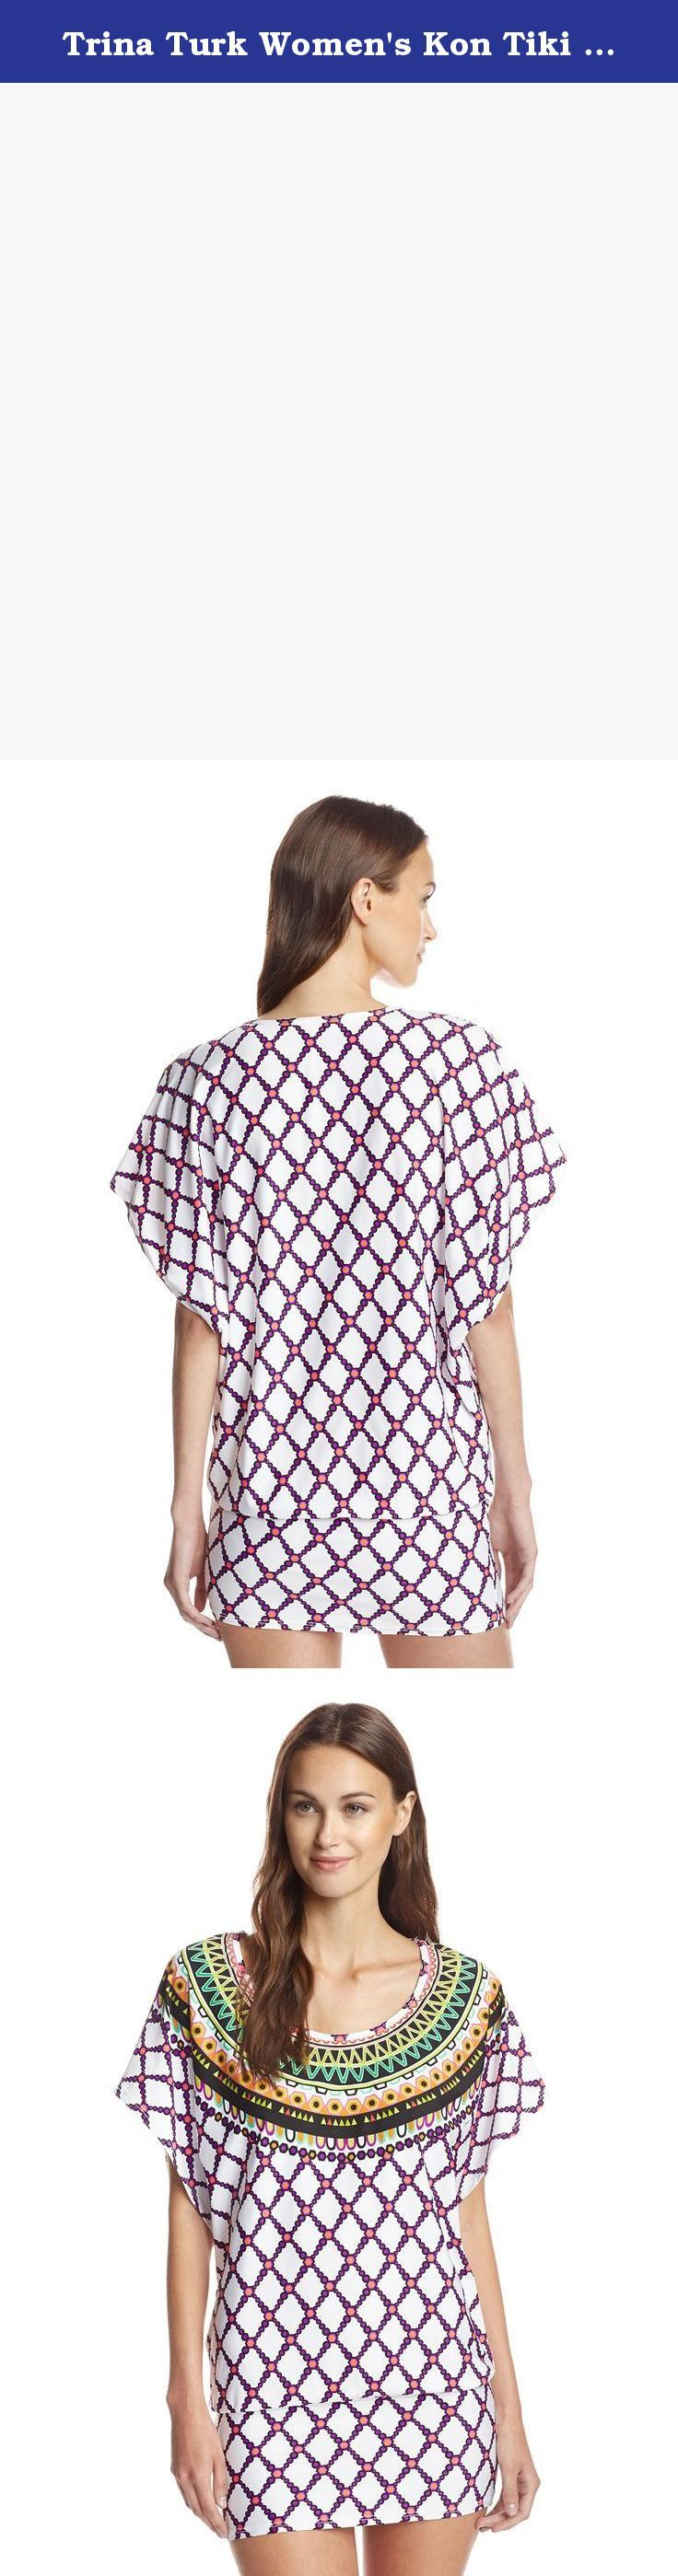 Trina Turk Women's Kon Tiki Tunic, White, L. Colorfully-printed scoopneck tunic with relaxed fit bodice and fitted hem, loose-fit sleeves.